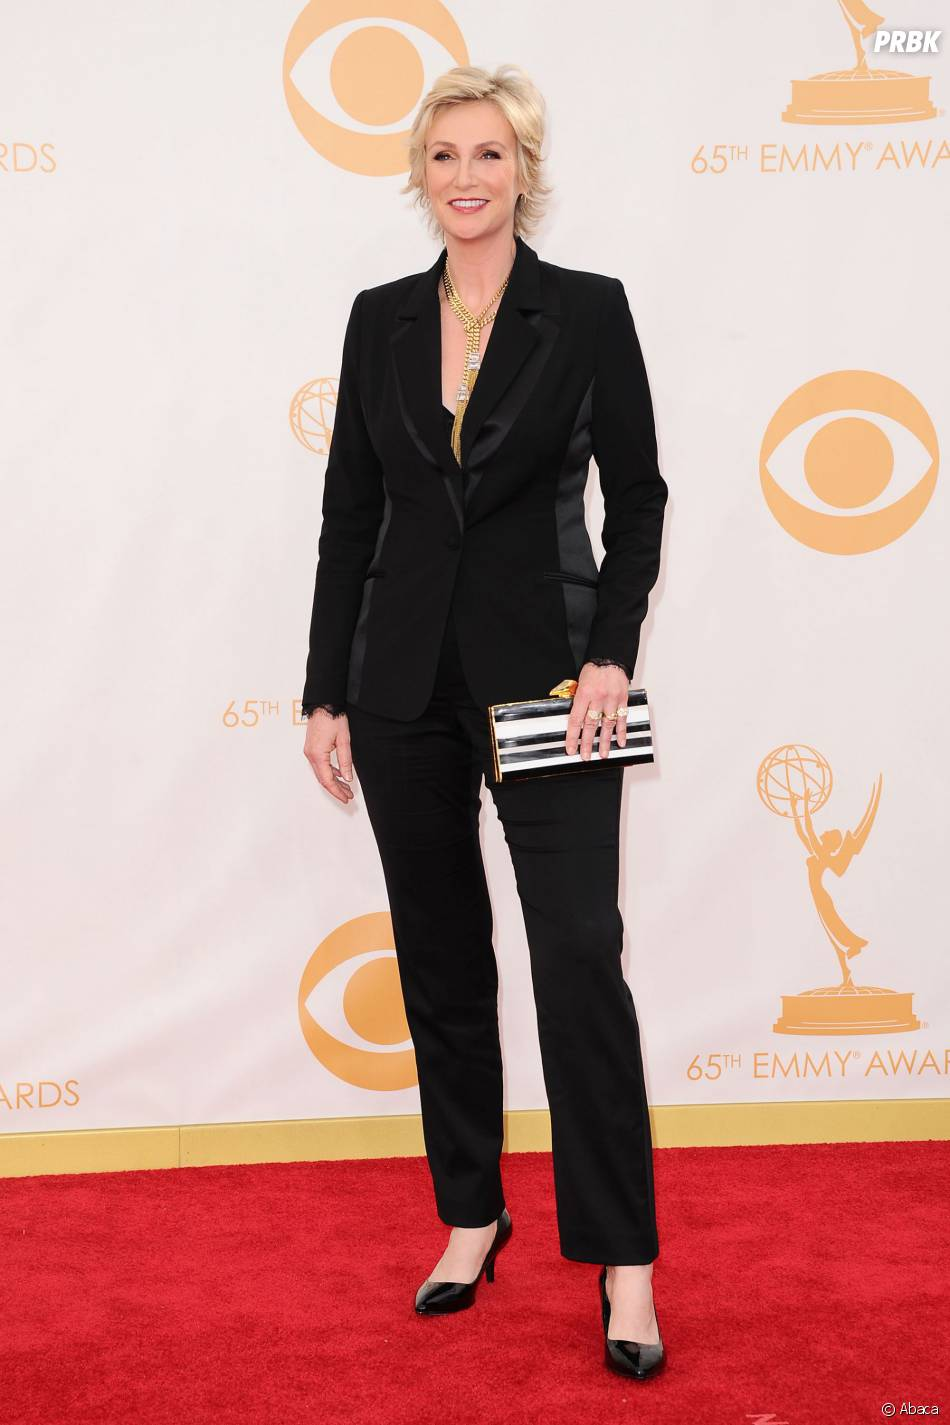 Jane Lynch aux Emmy Awards 2013 le 22 septembre 2013 à Los Angeles